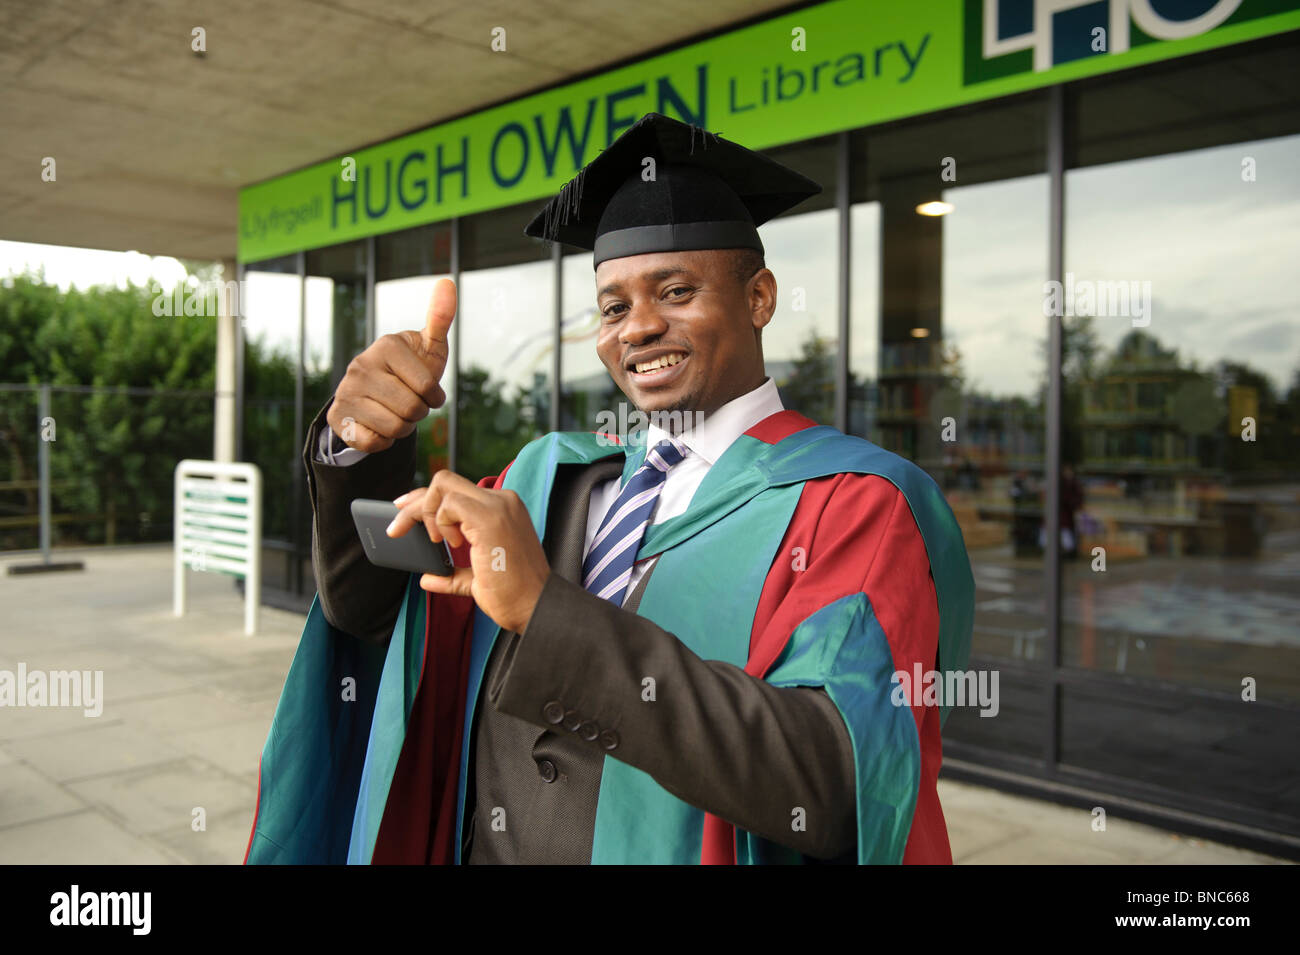 Doctoral Degree Stock Photos & Doctoral Degree Stock Images - Alamy